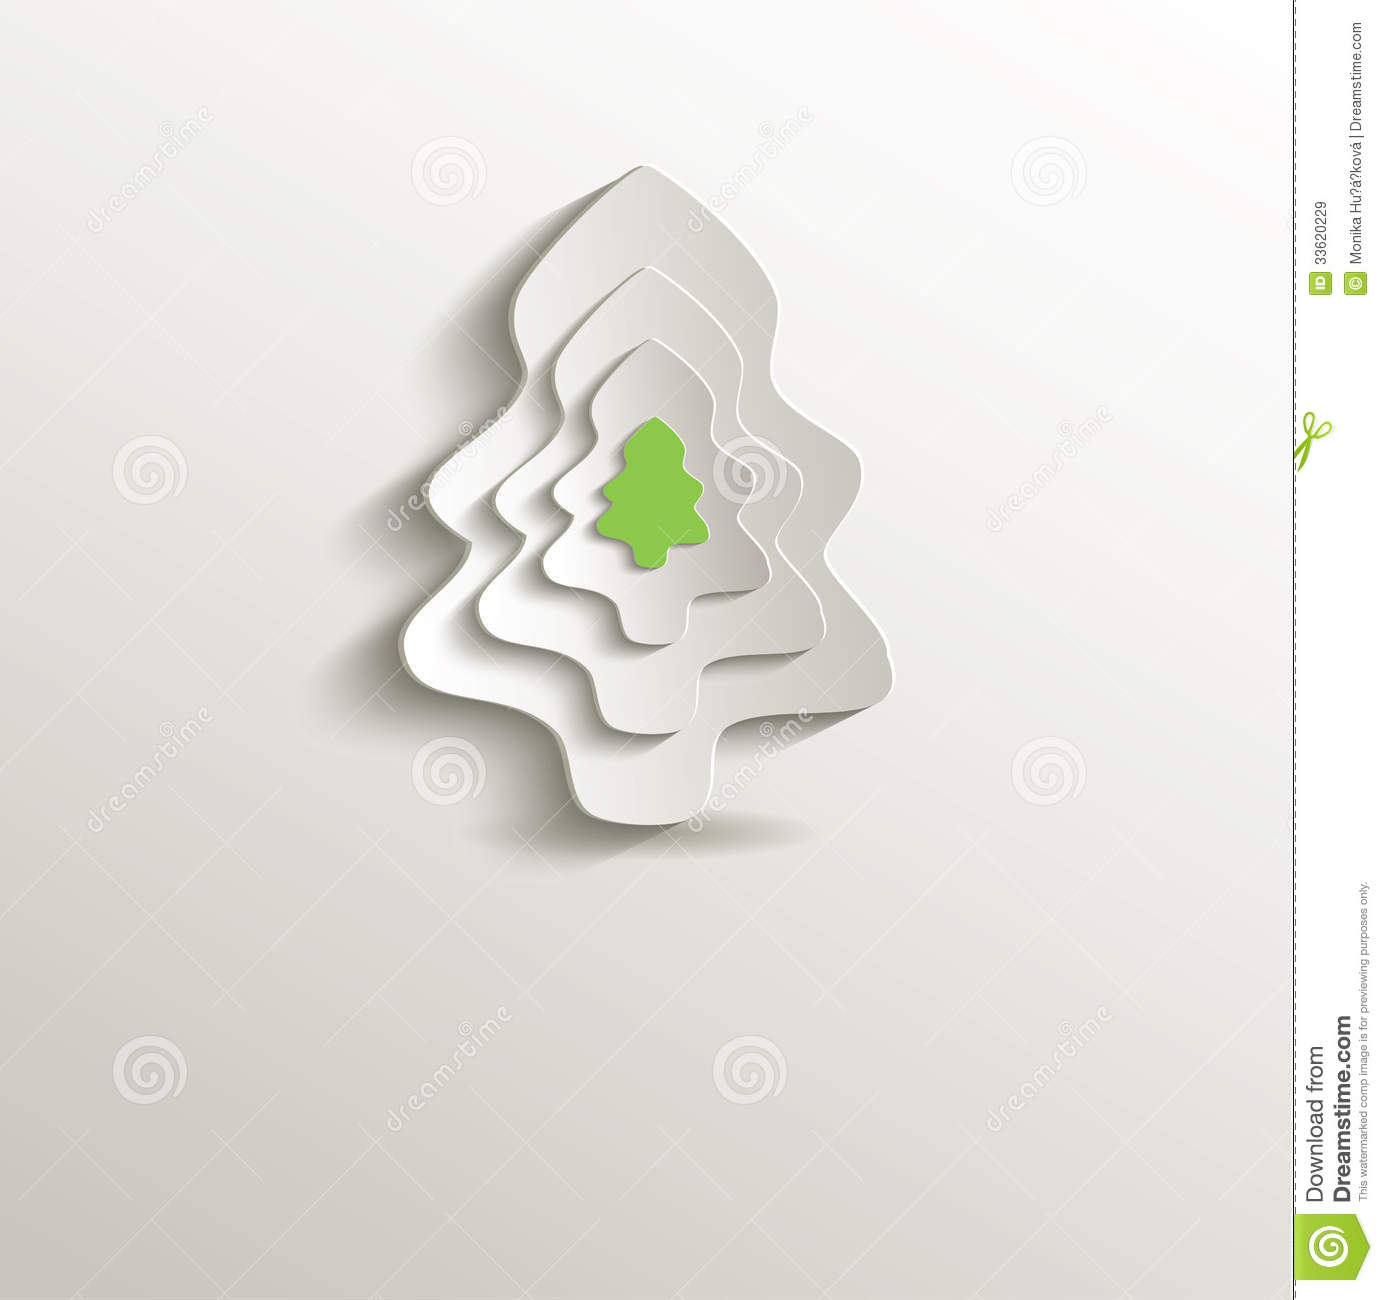 3d Paper Christmas Tree Template.Christmas Tree Paper 3d Stock Vector Illustration Of Shape 33620229